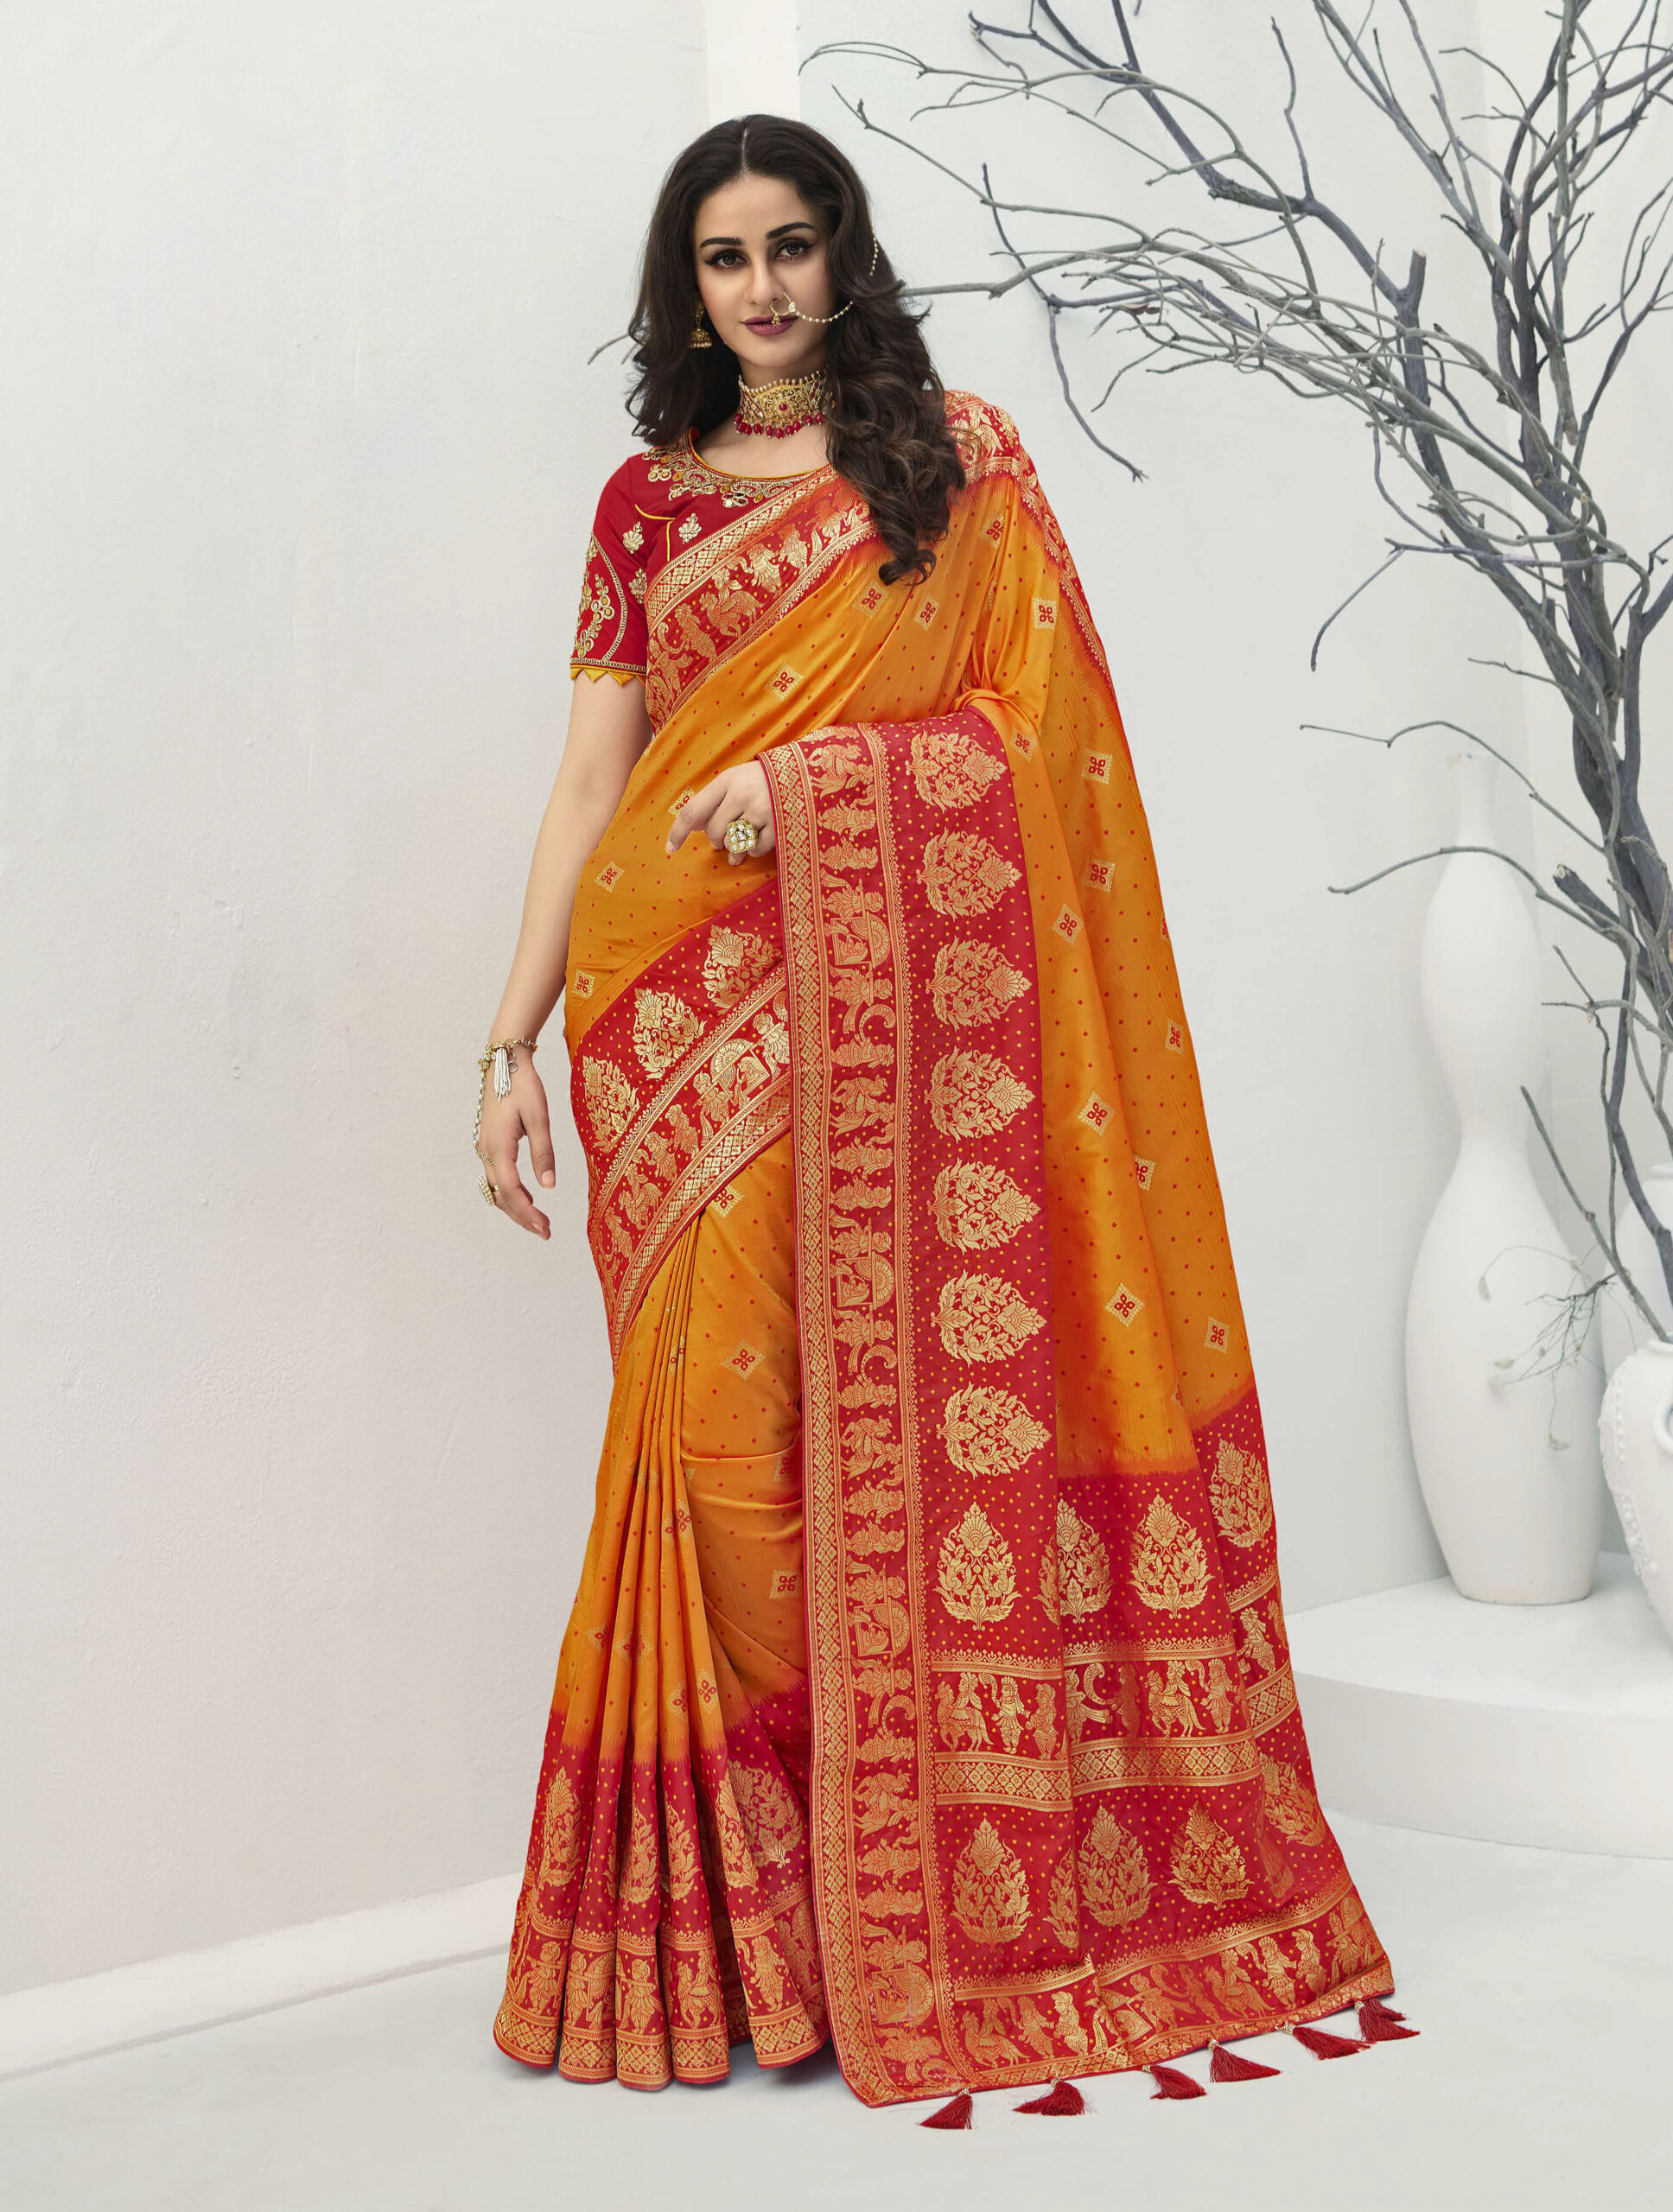 Turmeric Yellow Designer New Saree Design with Red Combination